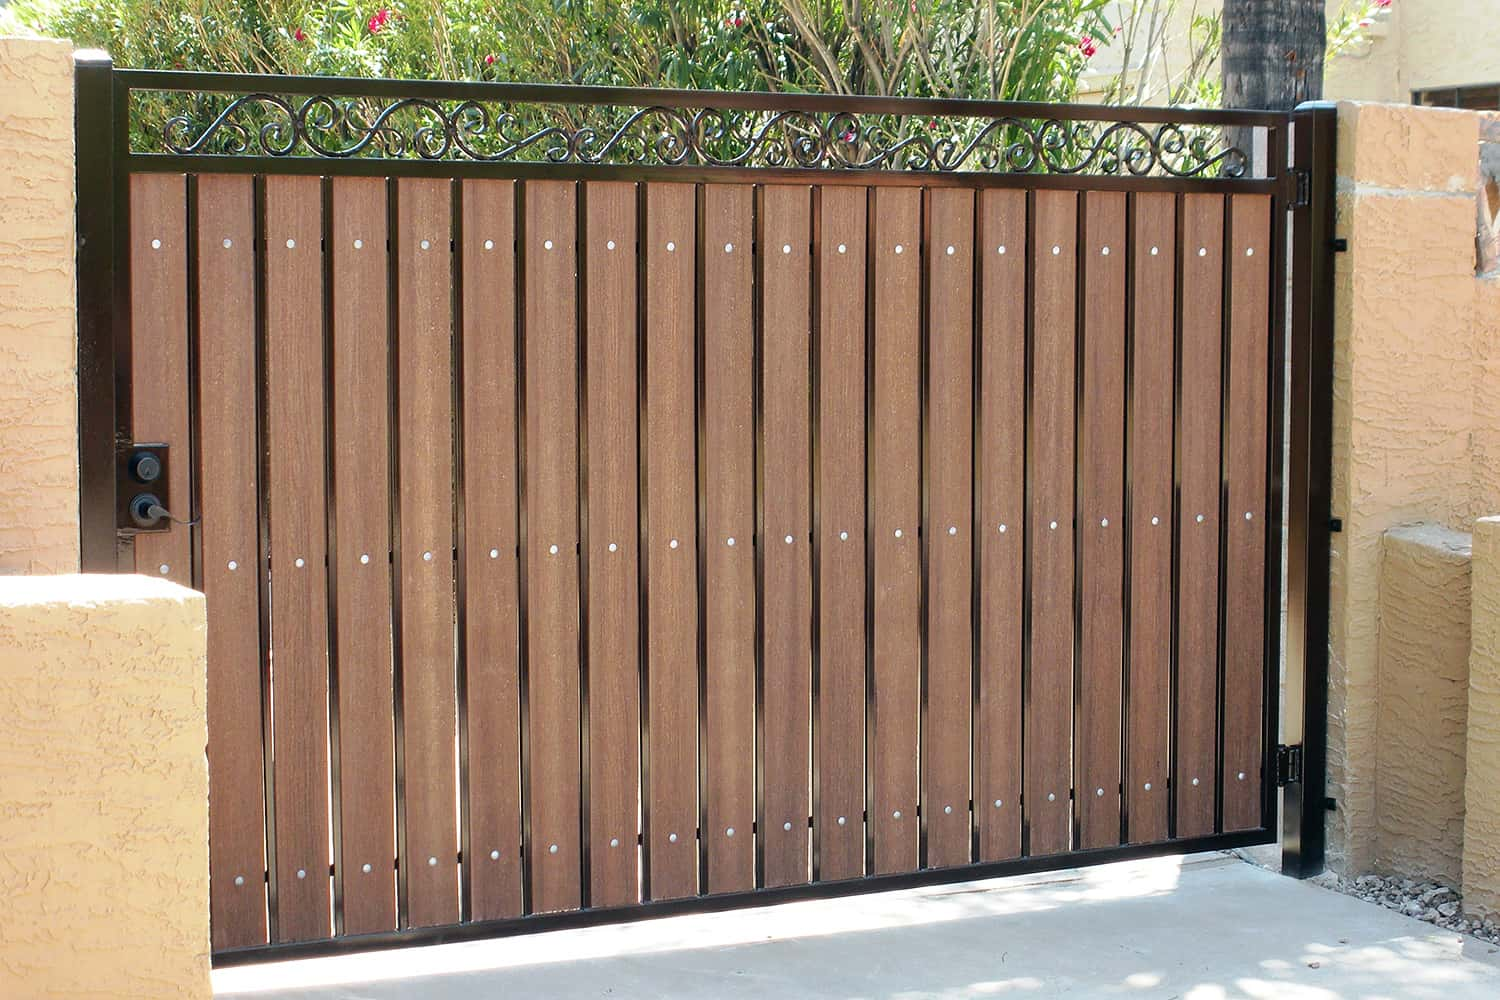 Driveway gate examples sun king fencing gates for Single wooden driveway gates